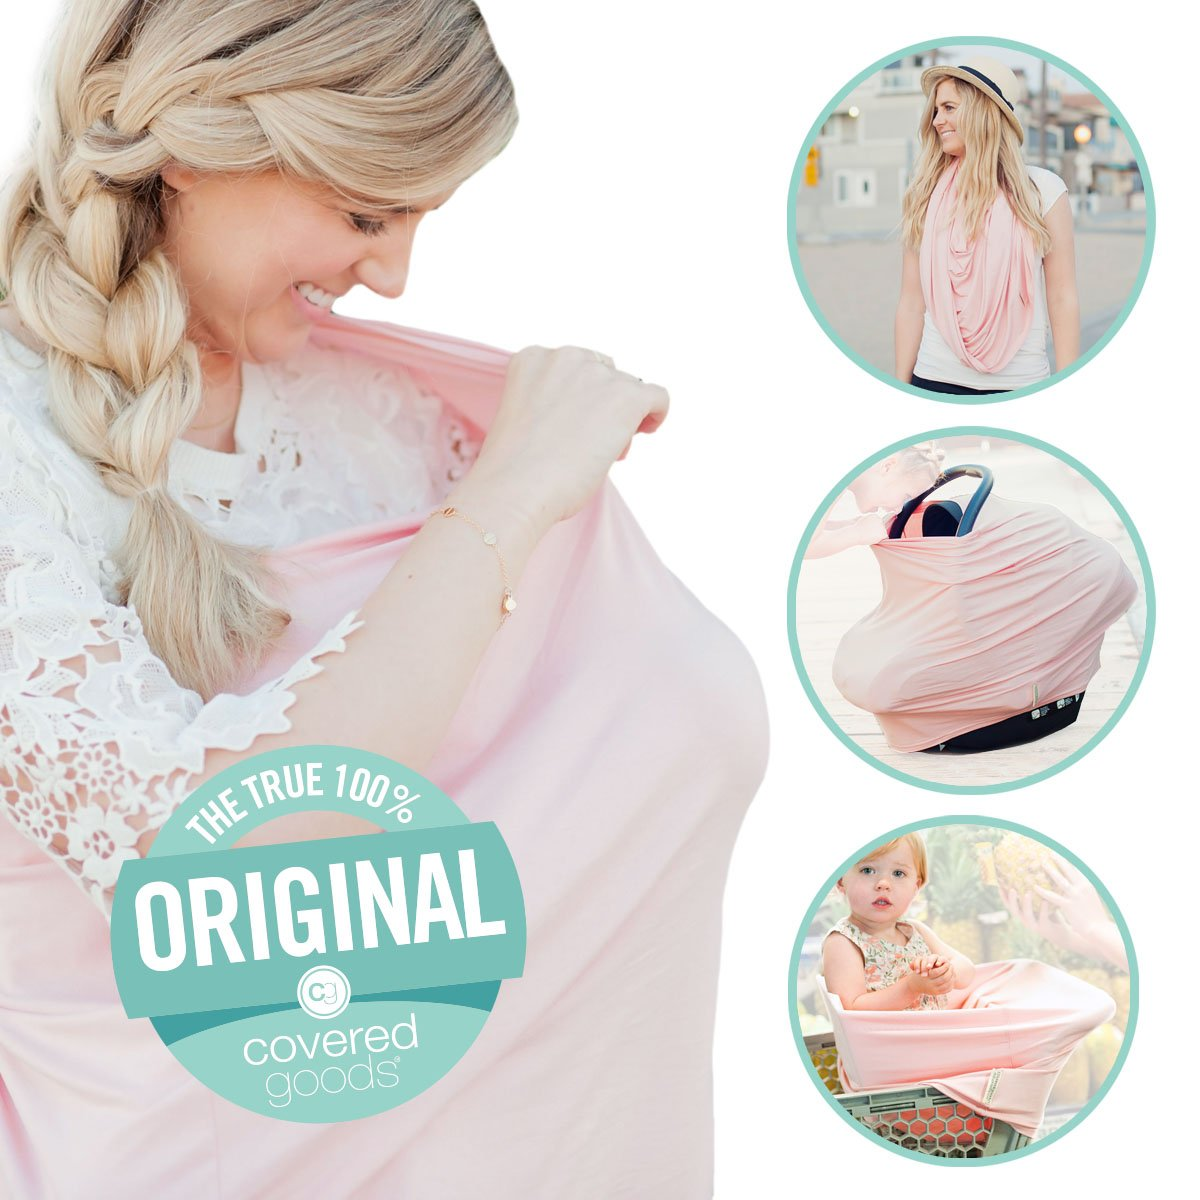 Covered Goods - The Original Multi Use Maternity Breastfeeding Nursing Cover, Infinity Scarf, and Car Seat Cover - Rose Quartz